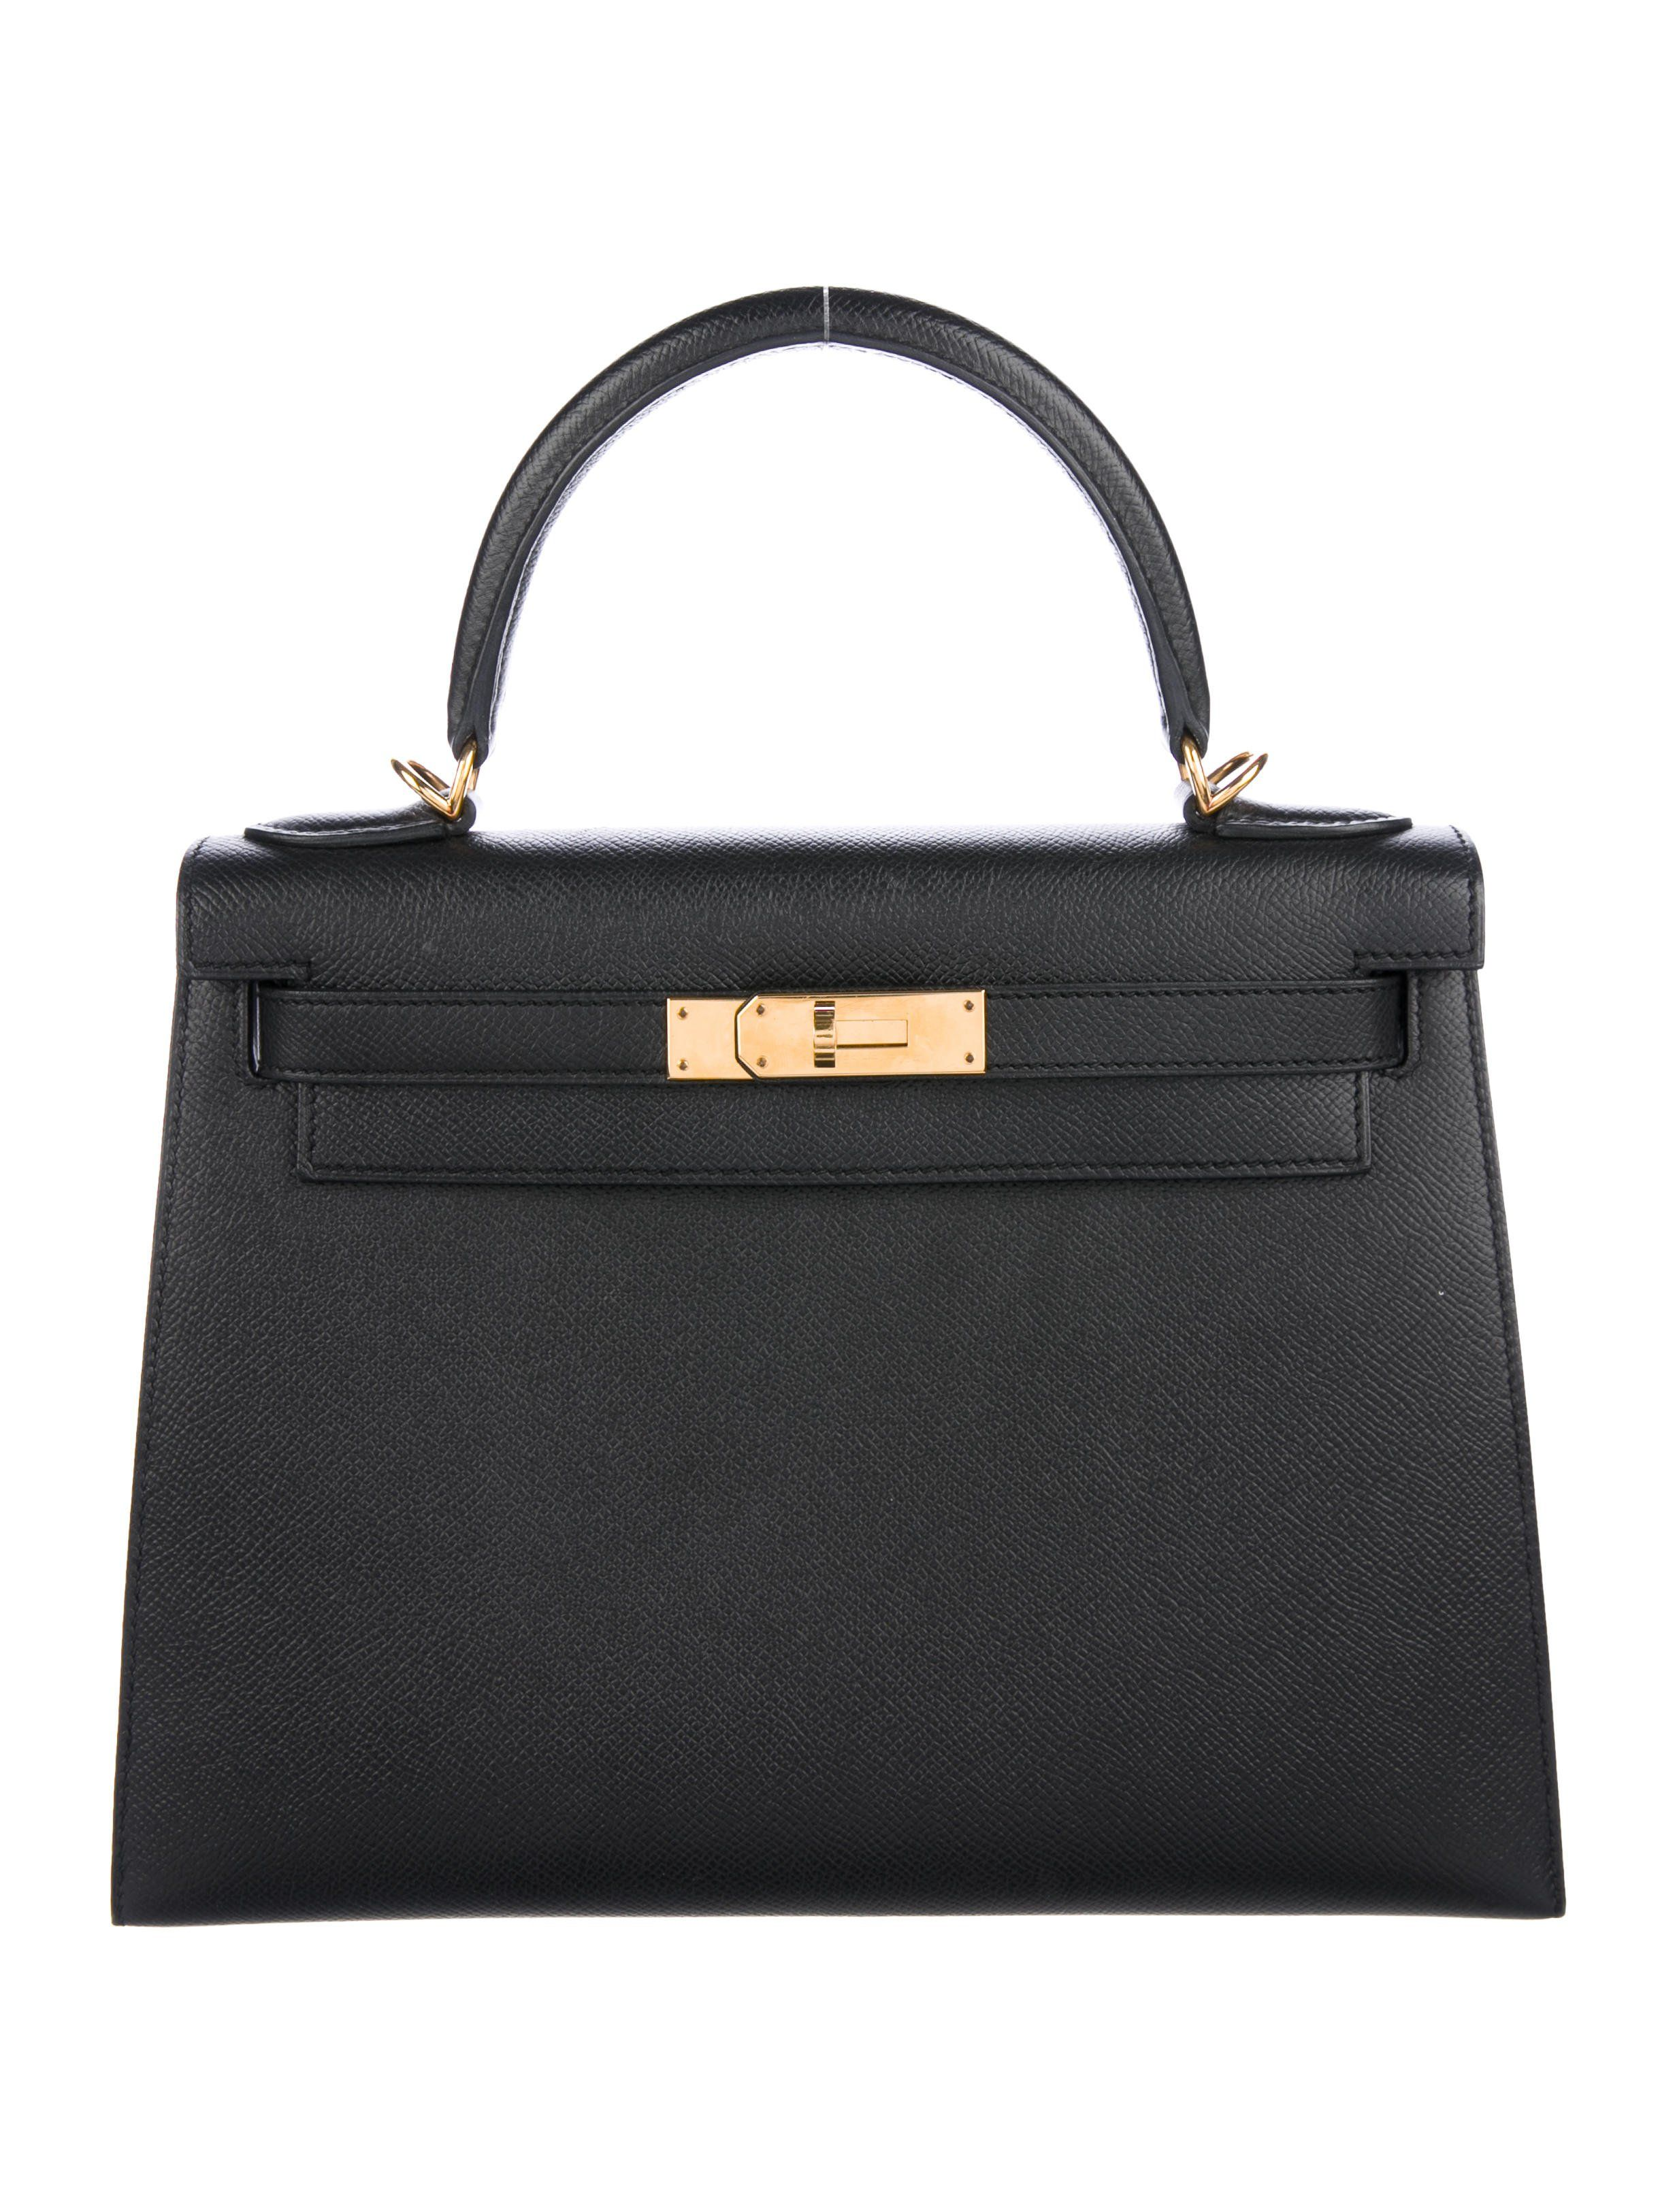 89f8f67226 Black Epsom leather Hermès Kelly Sellier 28 with gold-plated hardware